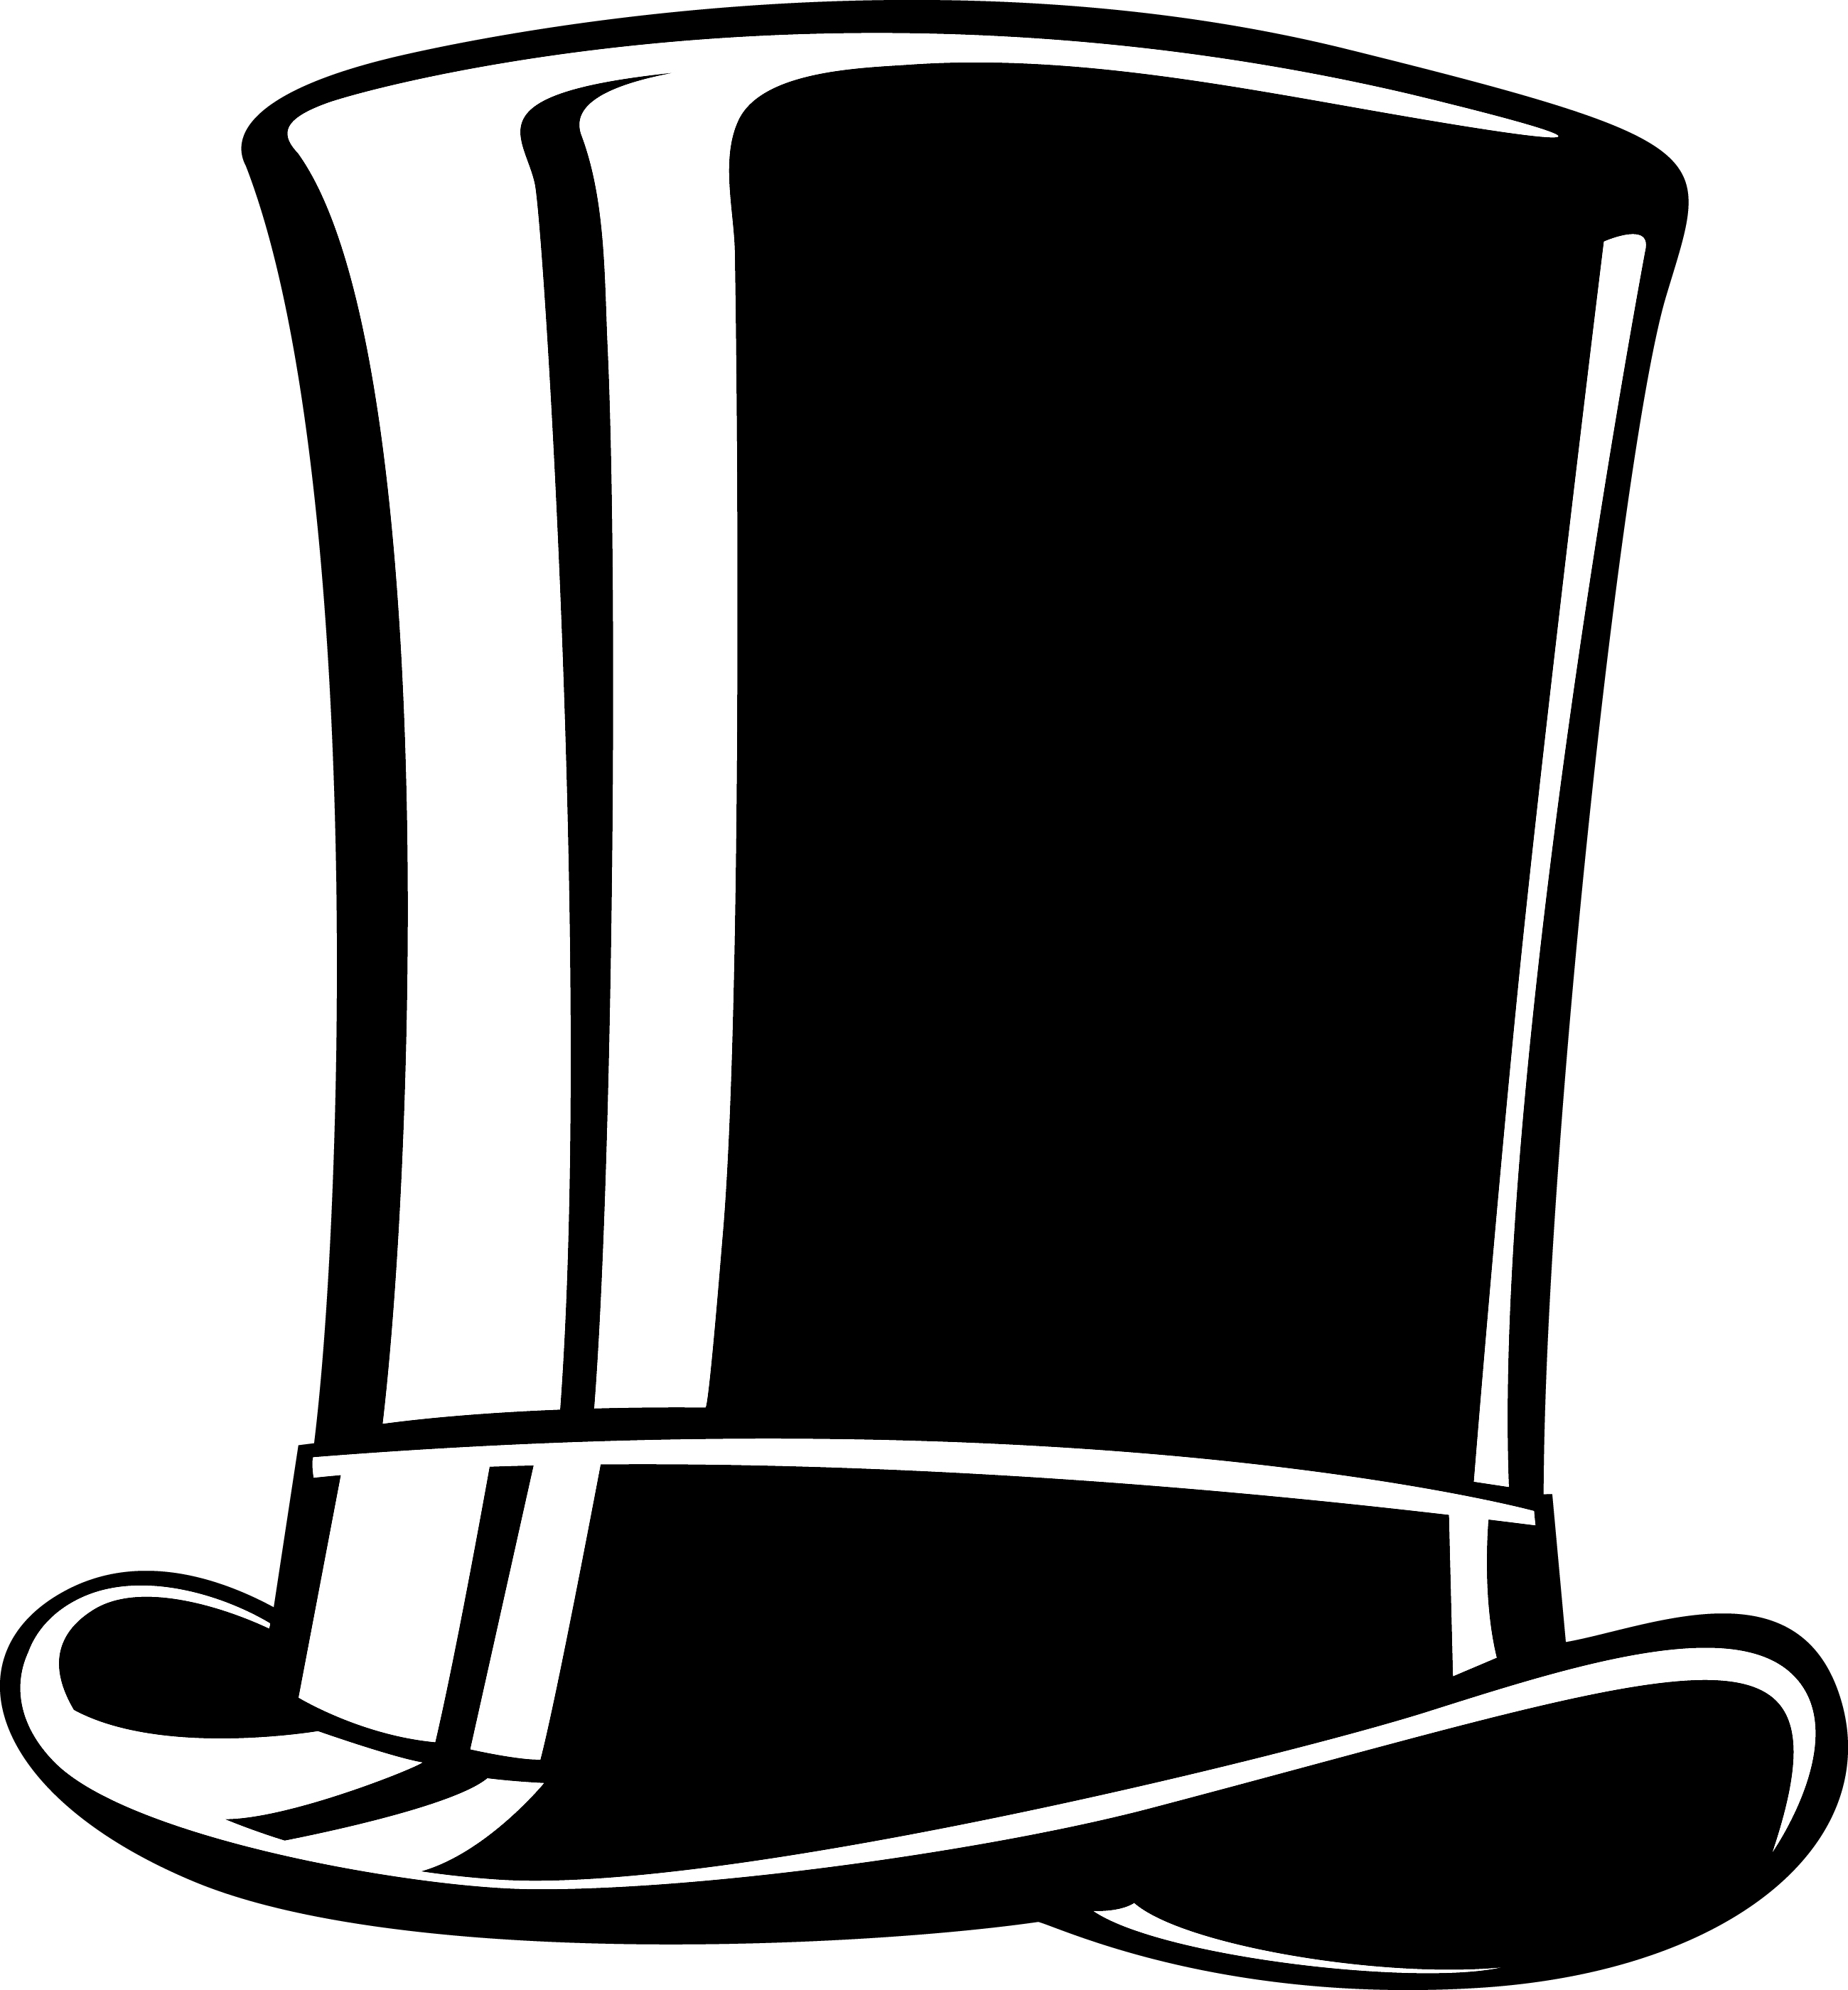 abraham lincoln hat clipart - photo #6